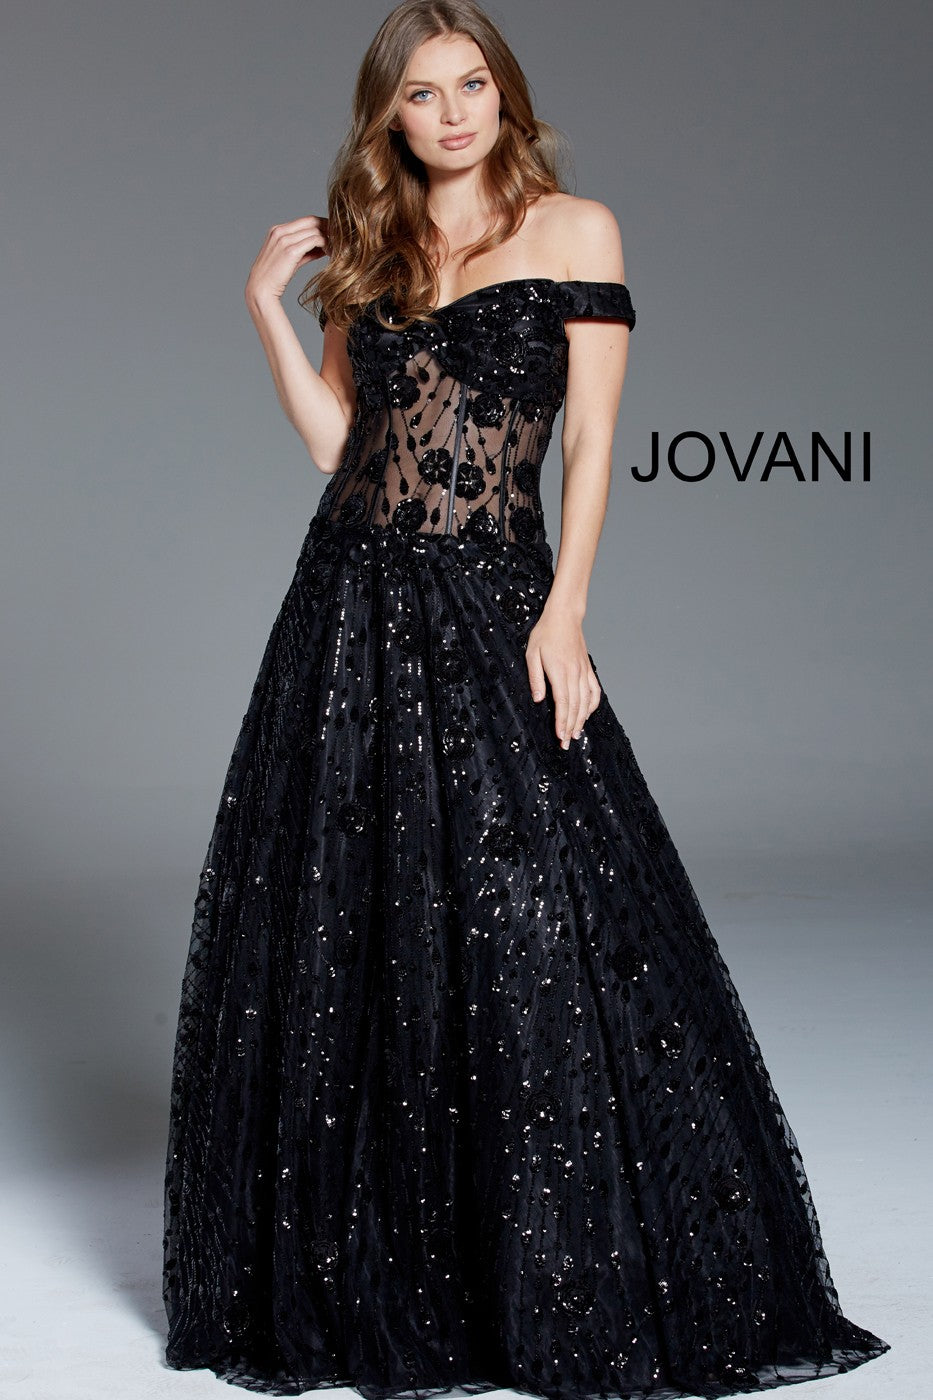 JOVANI 60814 Black Sequin Embellished Off the Shoulder Evening Gown